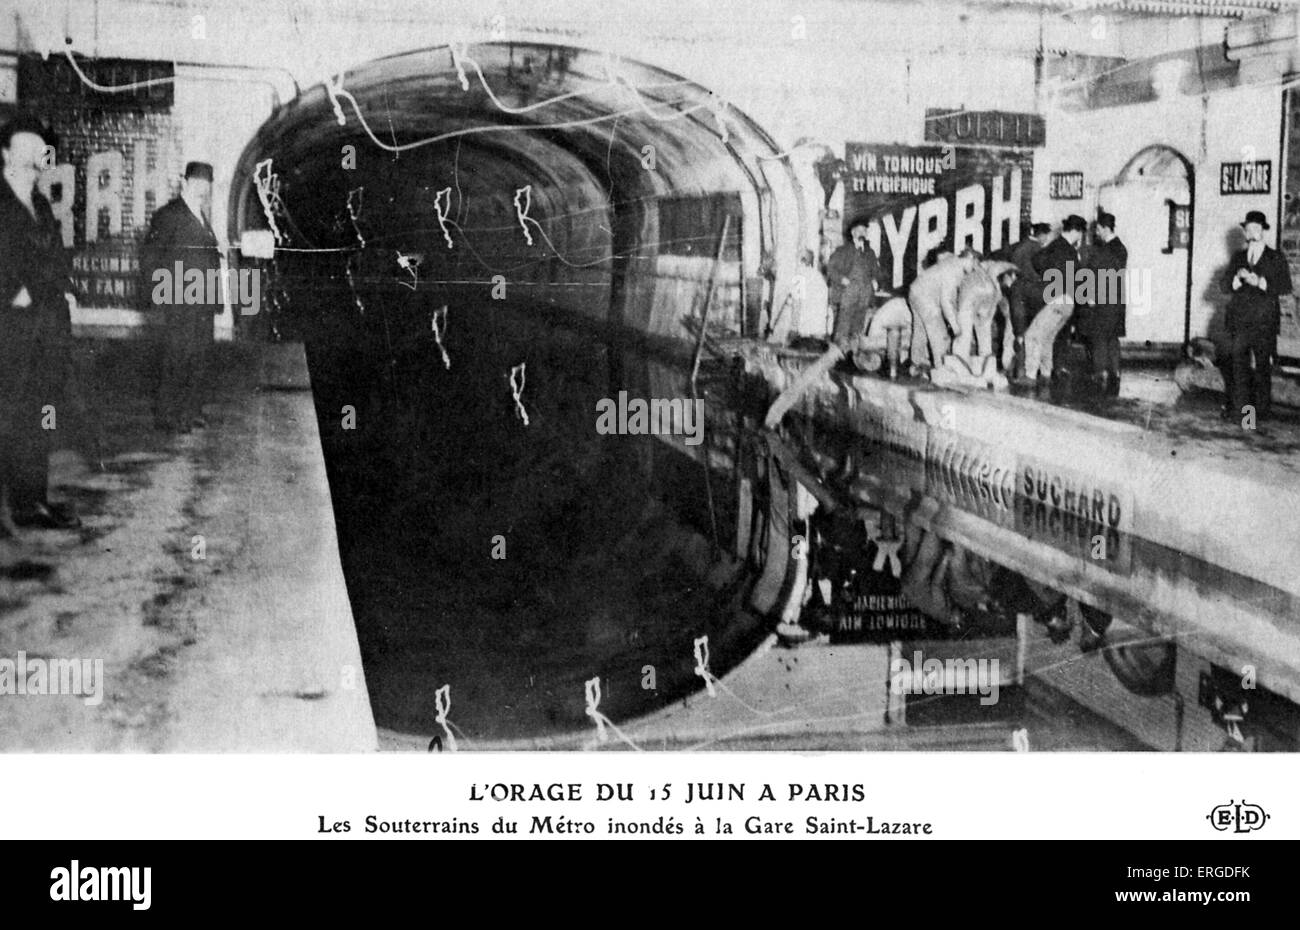 Great Flood of Paris, 1910 - flooded Metro tracks at Saint- Lazare station, 15 June 1910. Flooding of the Seine - Stock Image